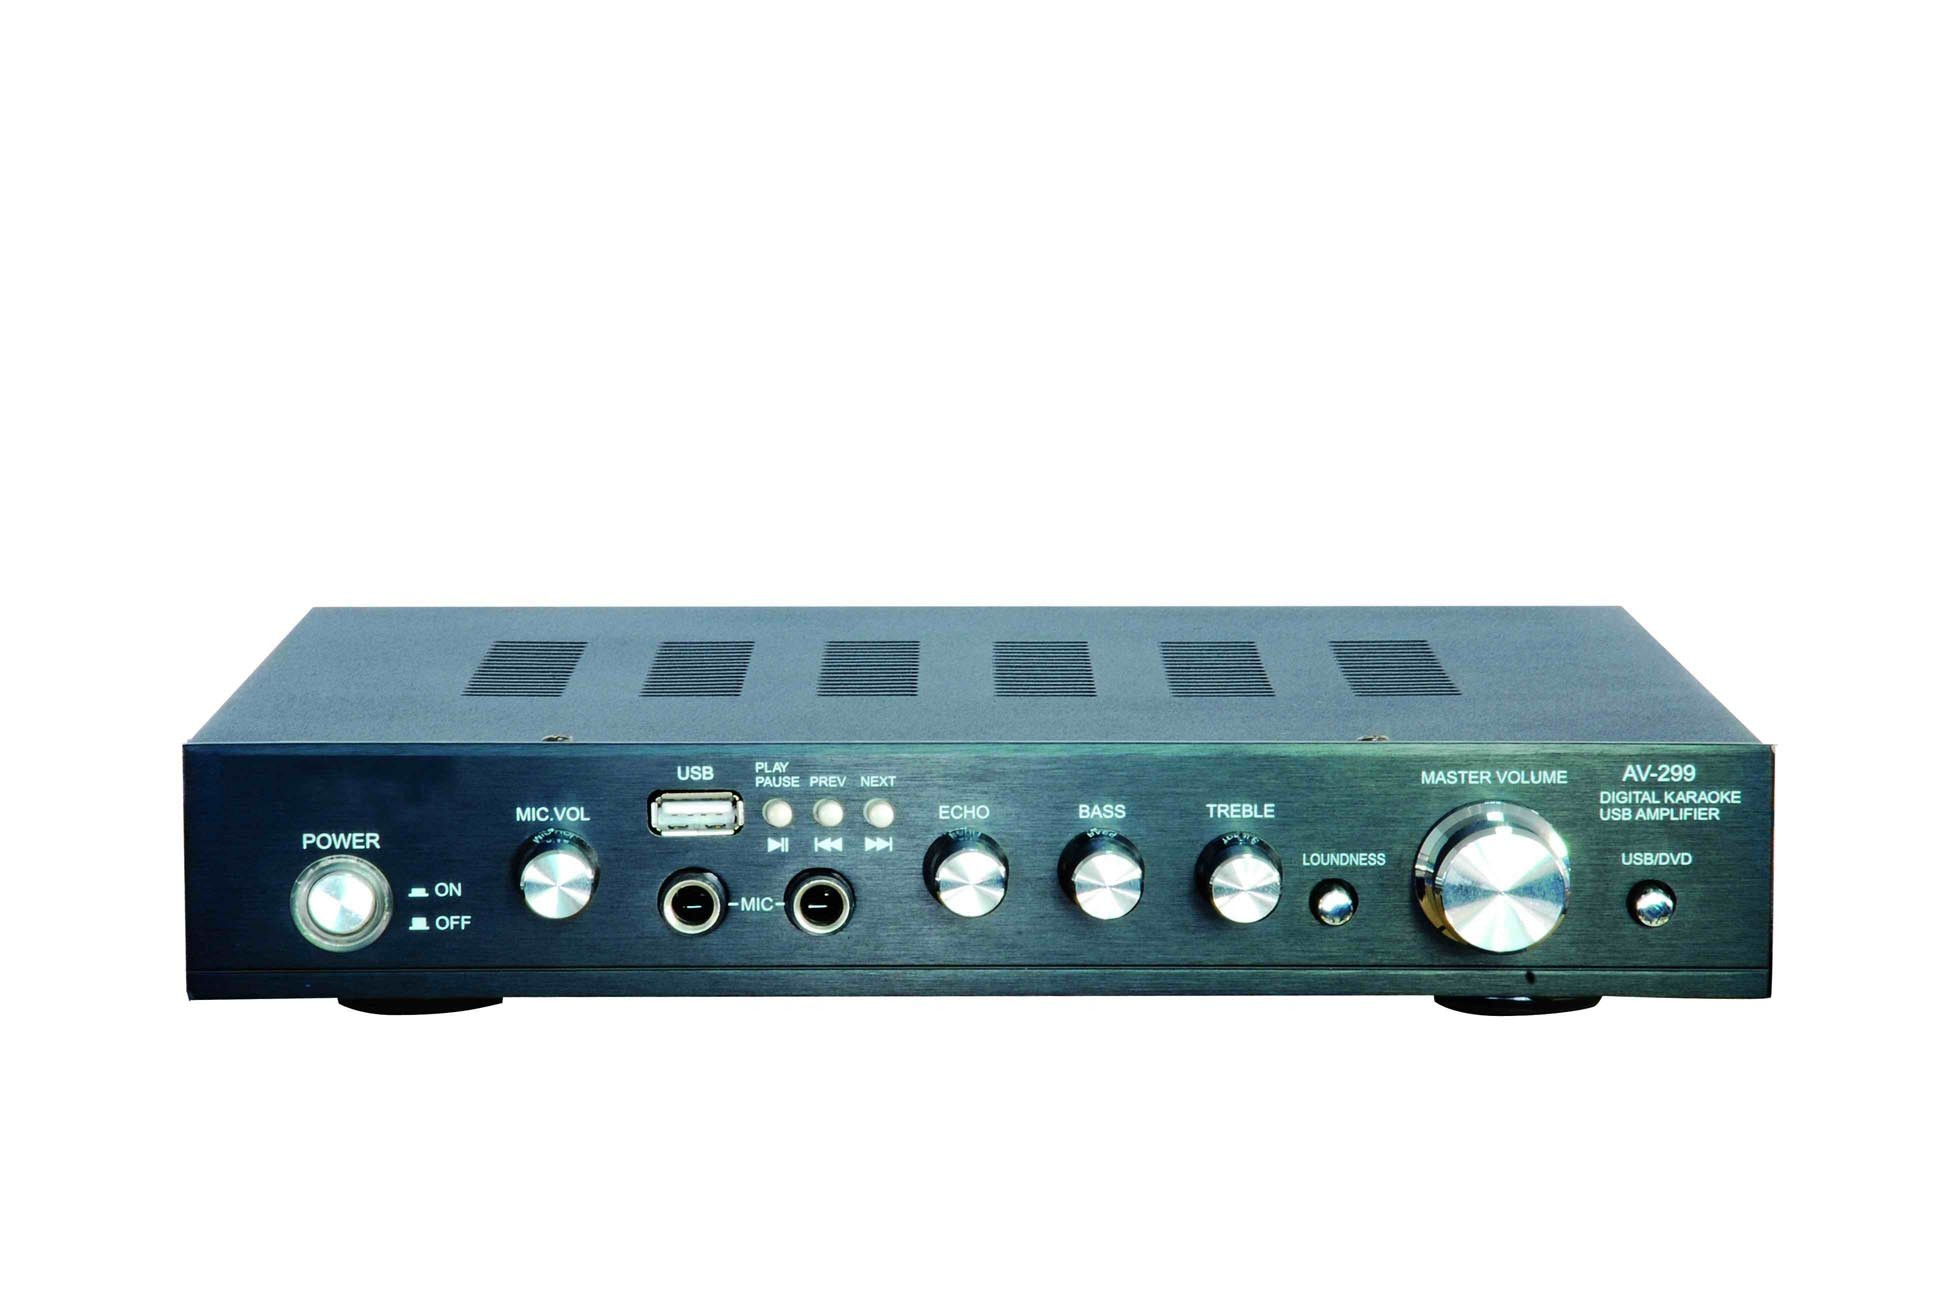 China Amplifier with USB AV-299 - China Digital Amplifier, Amplifier